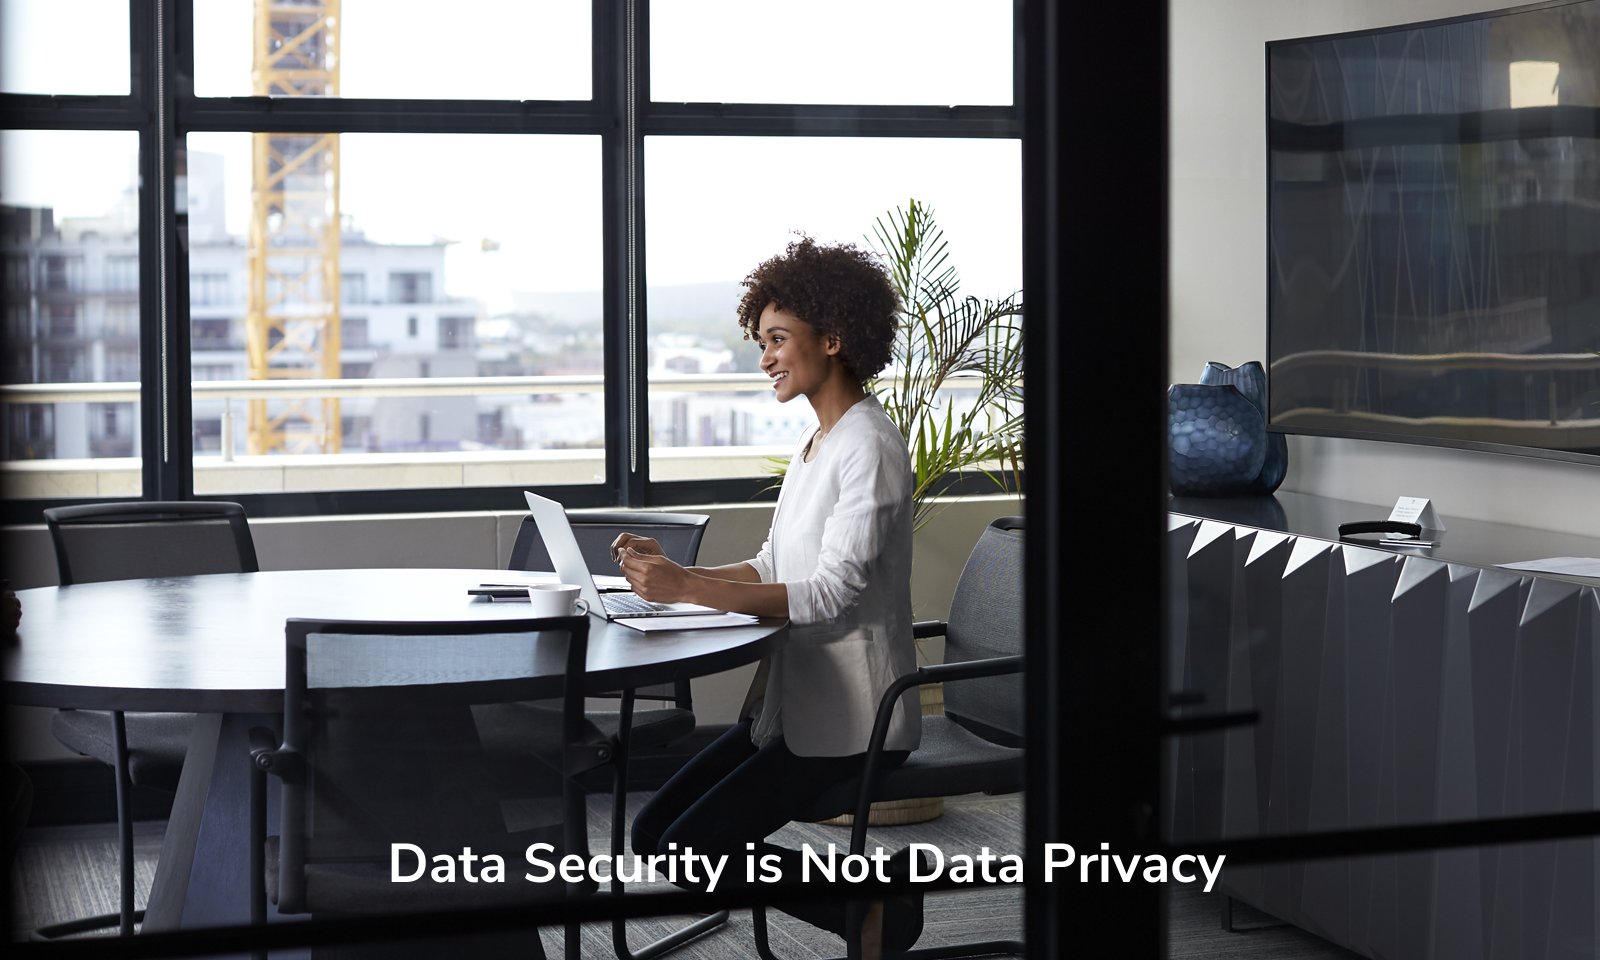 Data Security is Not Data Privacy